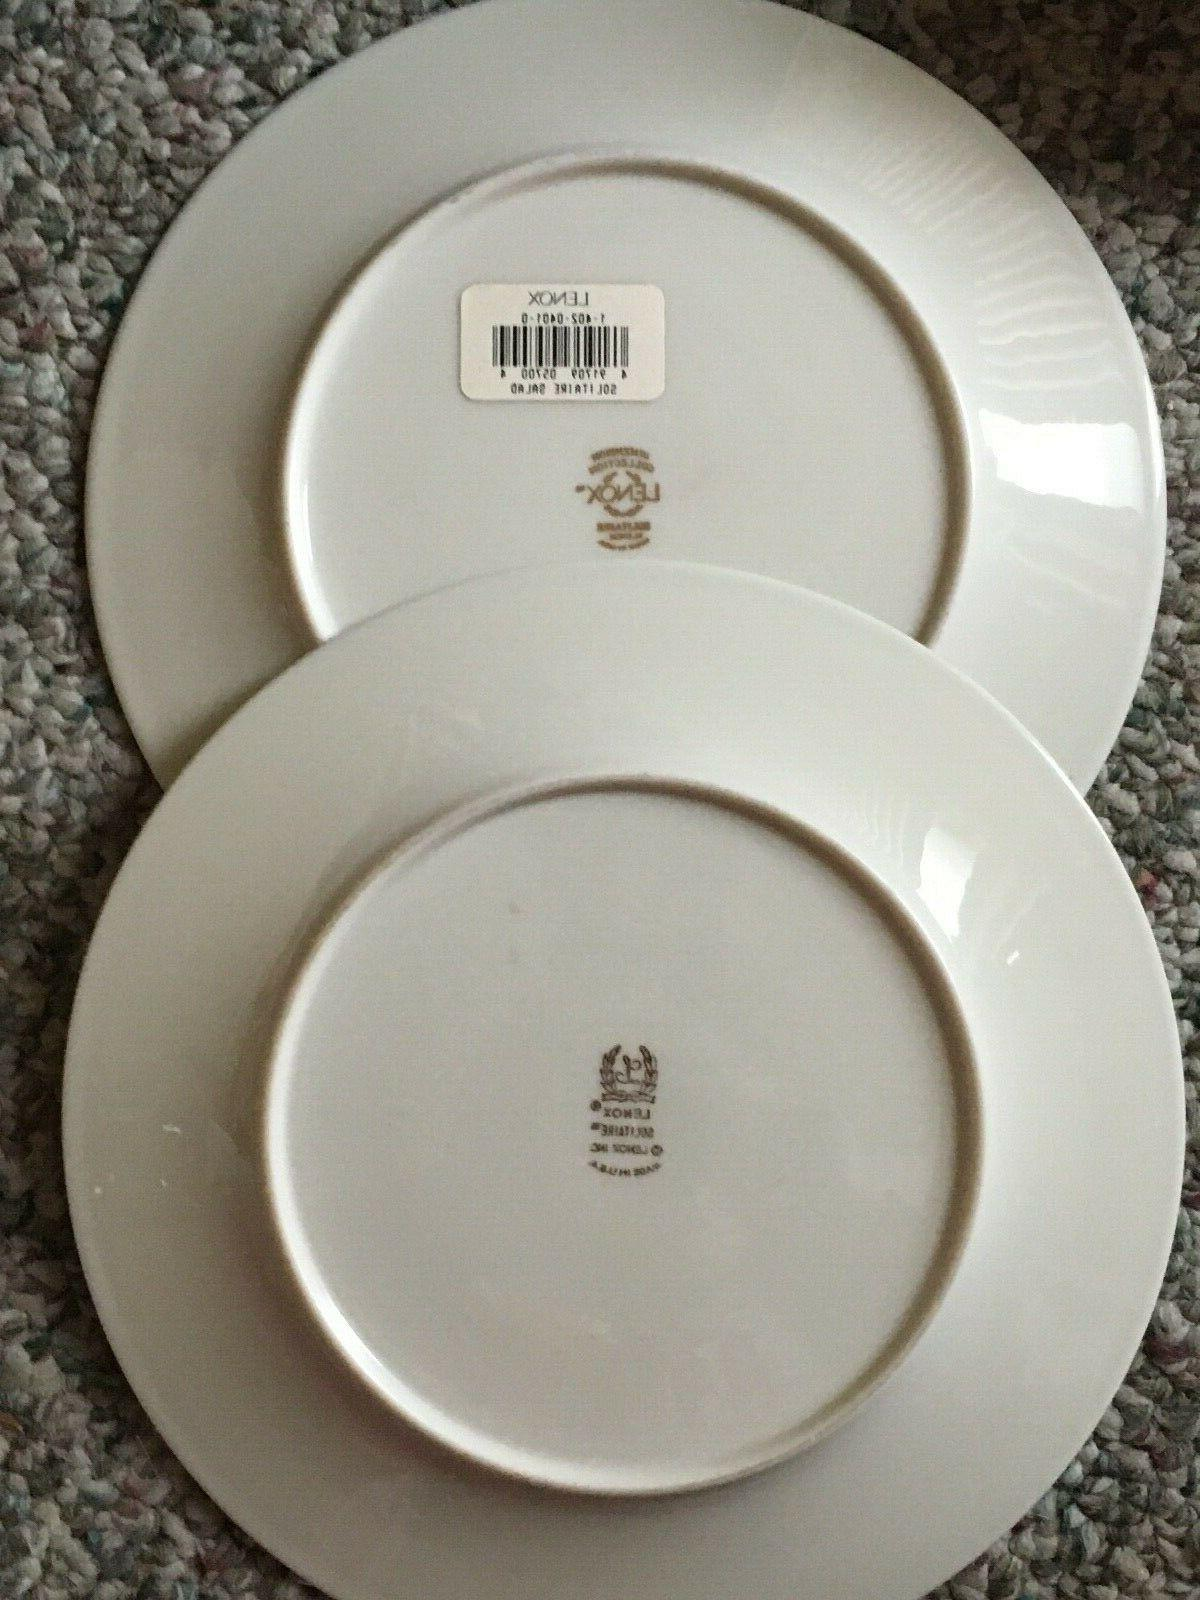 LOT OF Solitaire Platinum-Banded 5-Piece Place Setting